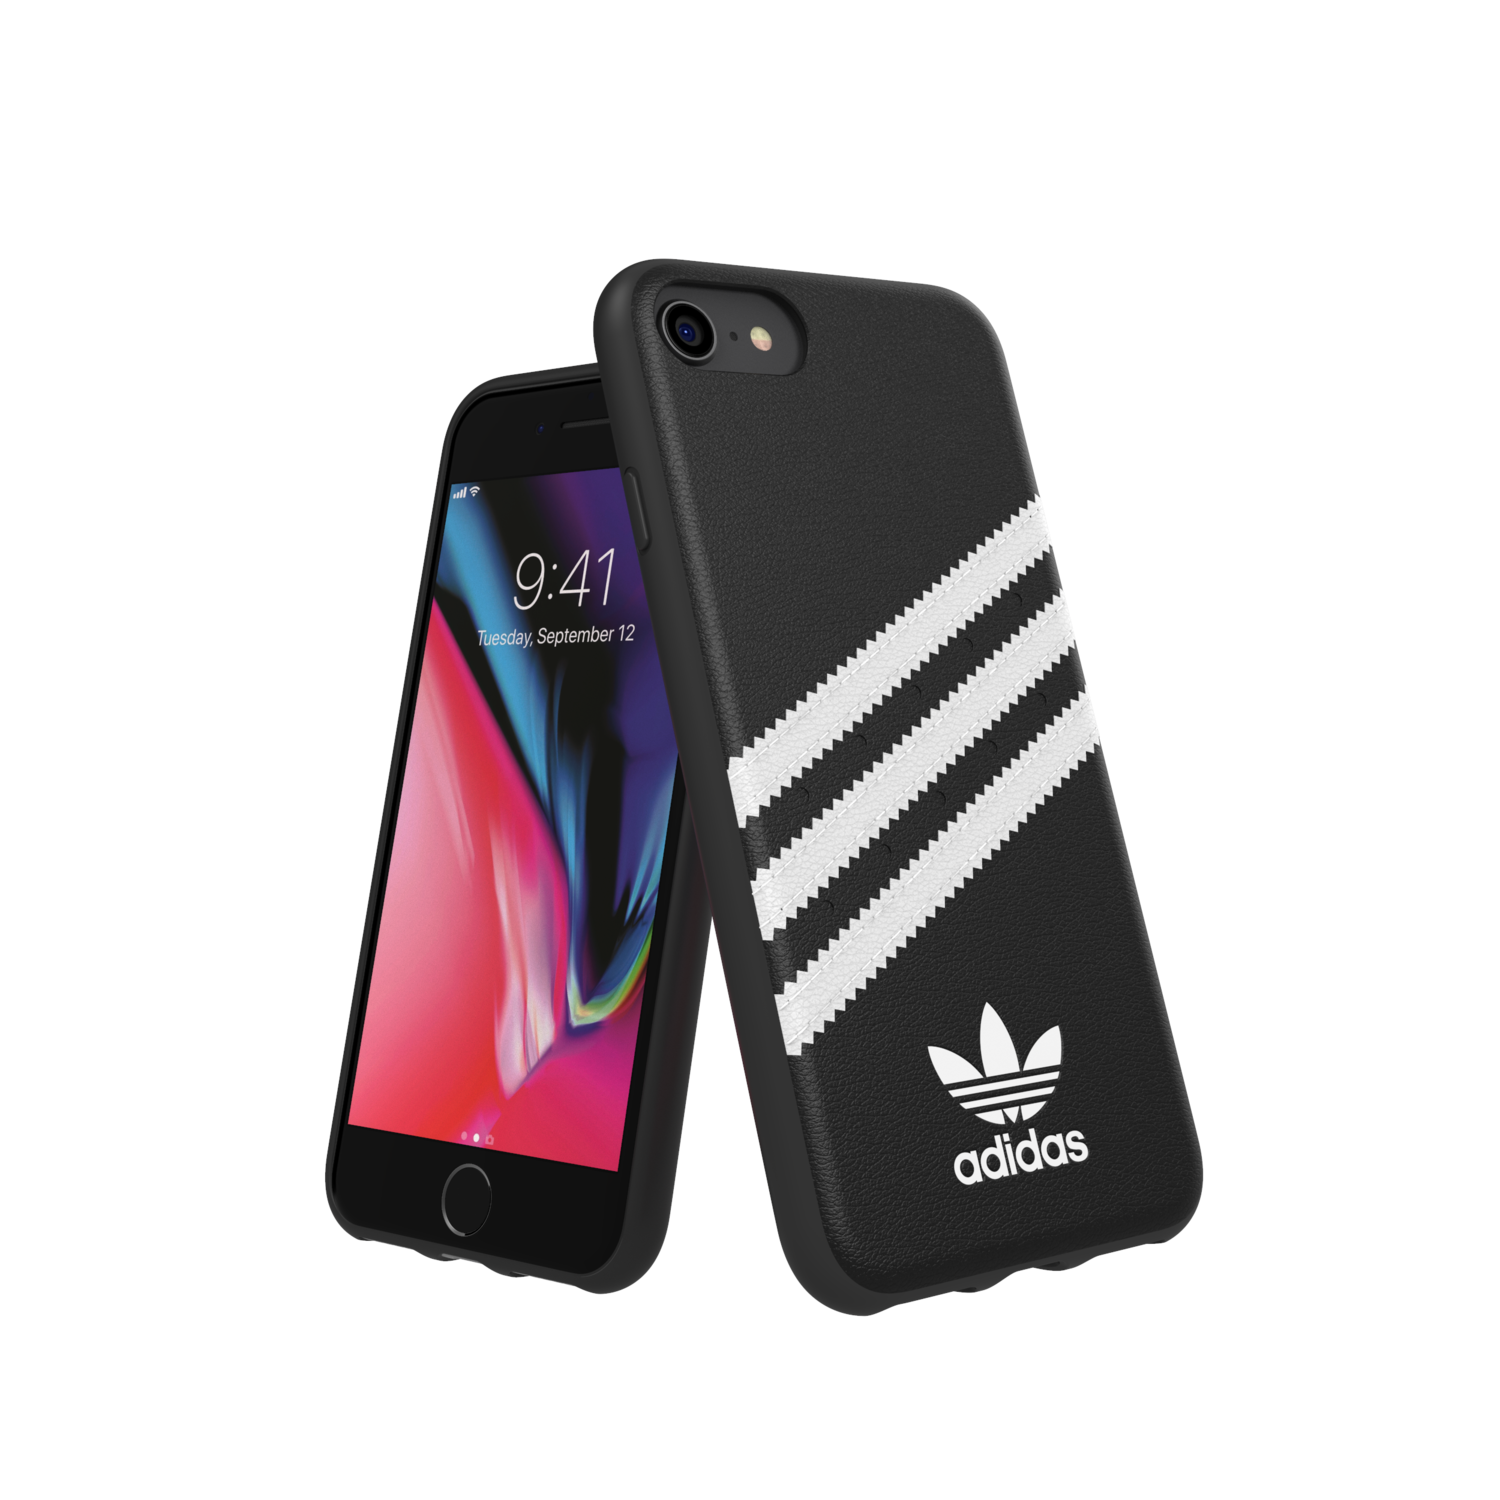 adidas OR Moulded Case PU FW18/SS21 for IPhone 6/6s/7/8/SE 2G black/white